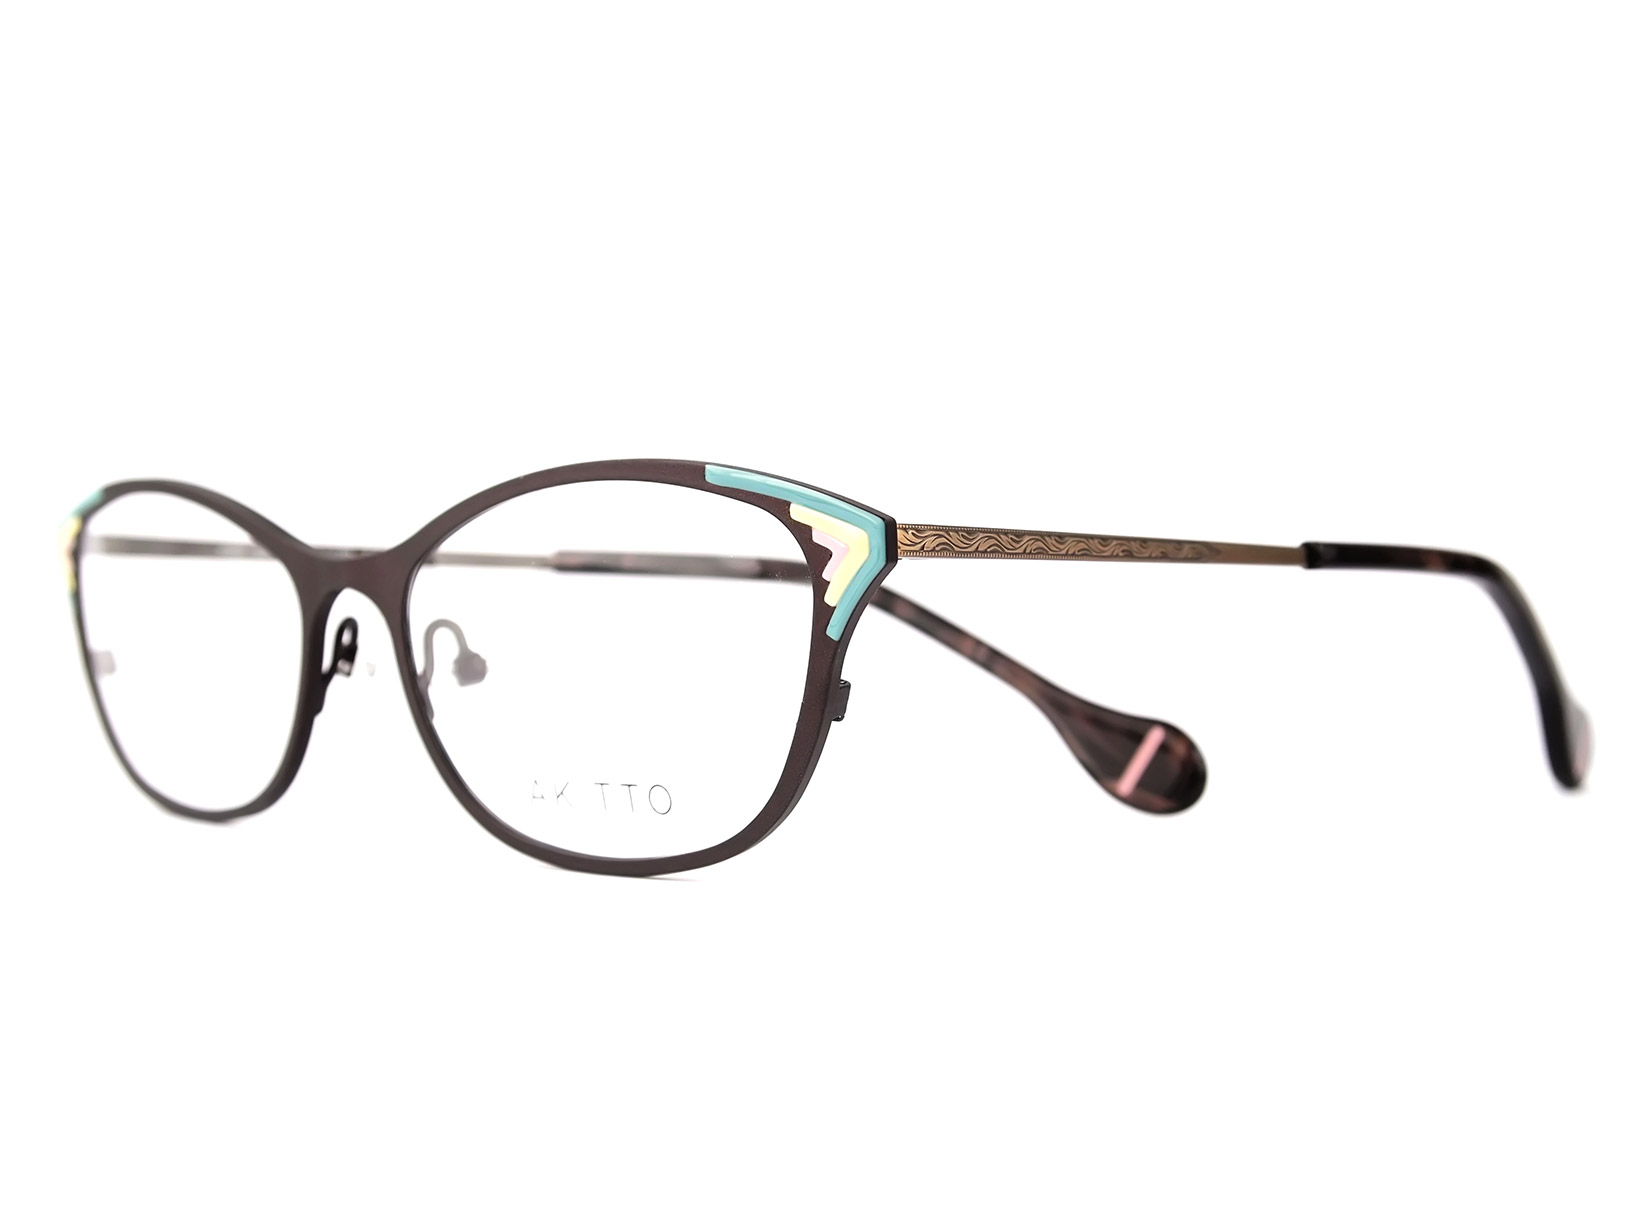 AKITTO 2016-2nd emi color|DB size:52□16 material: titanium price:44,500-(+tax)